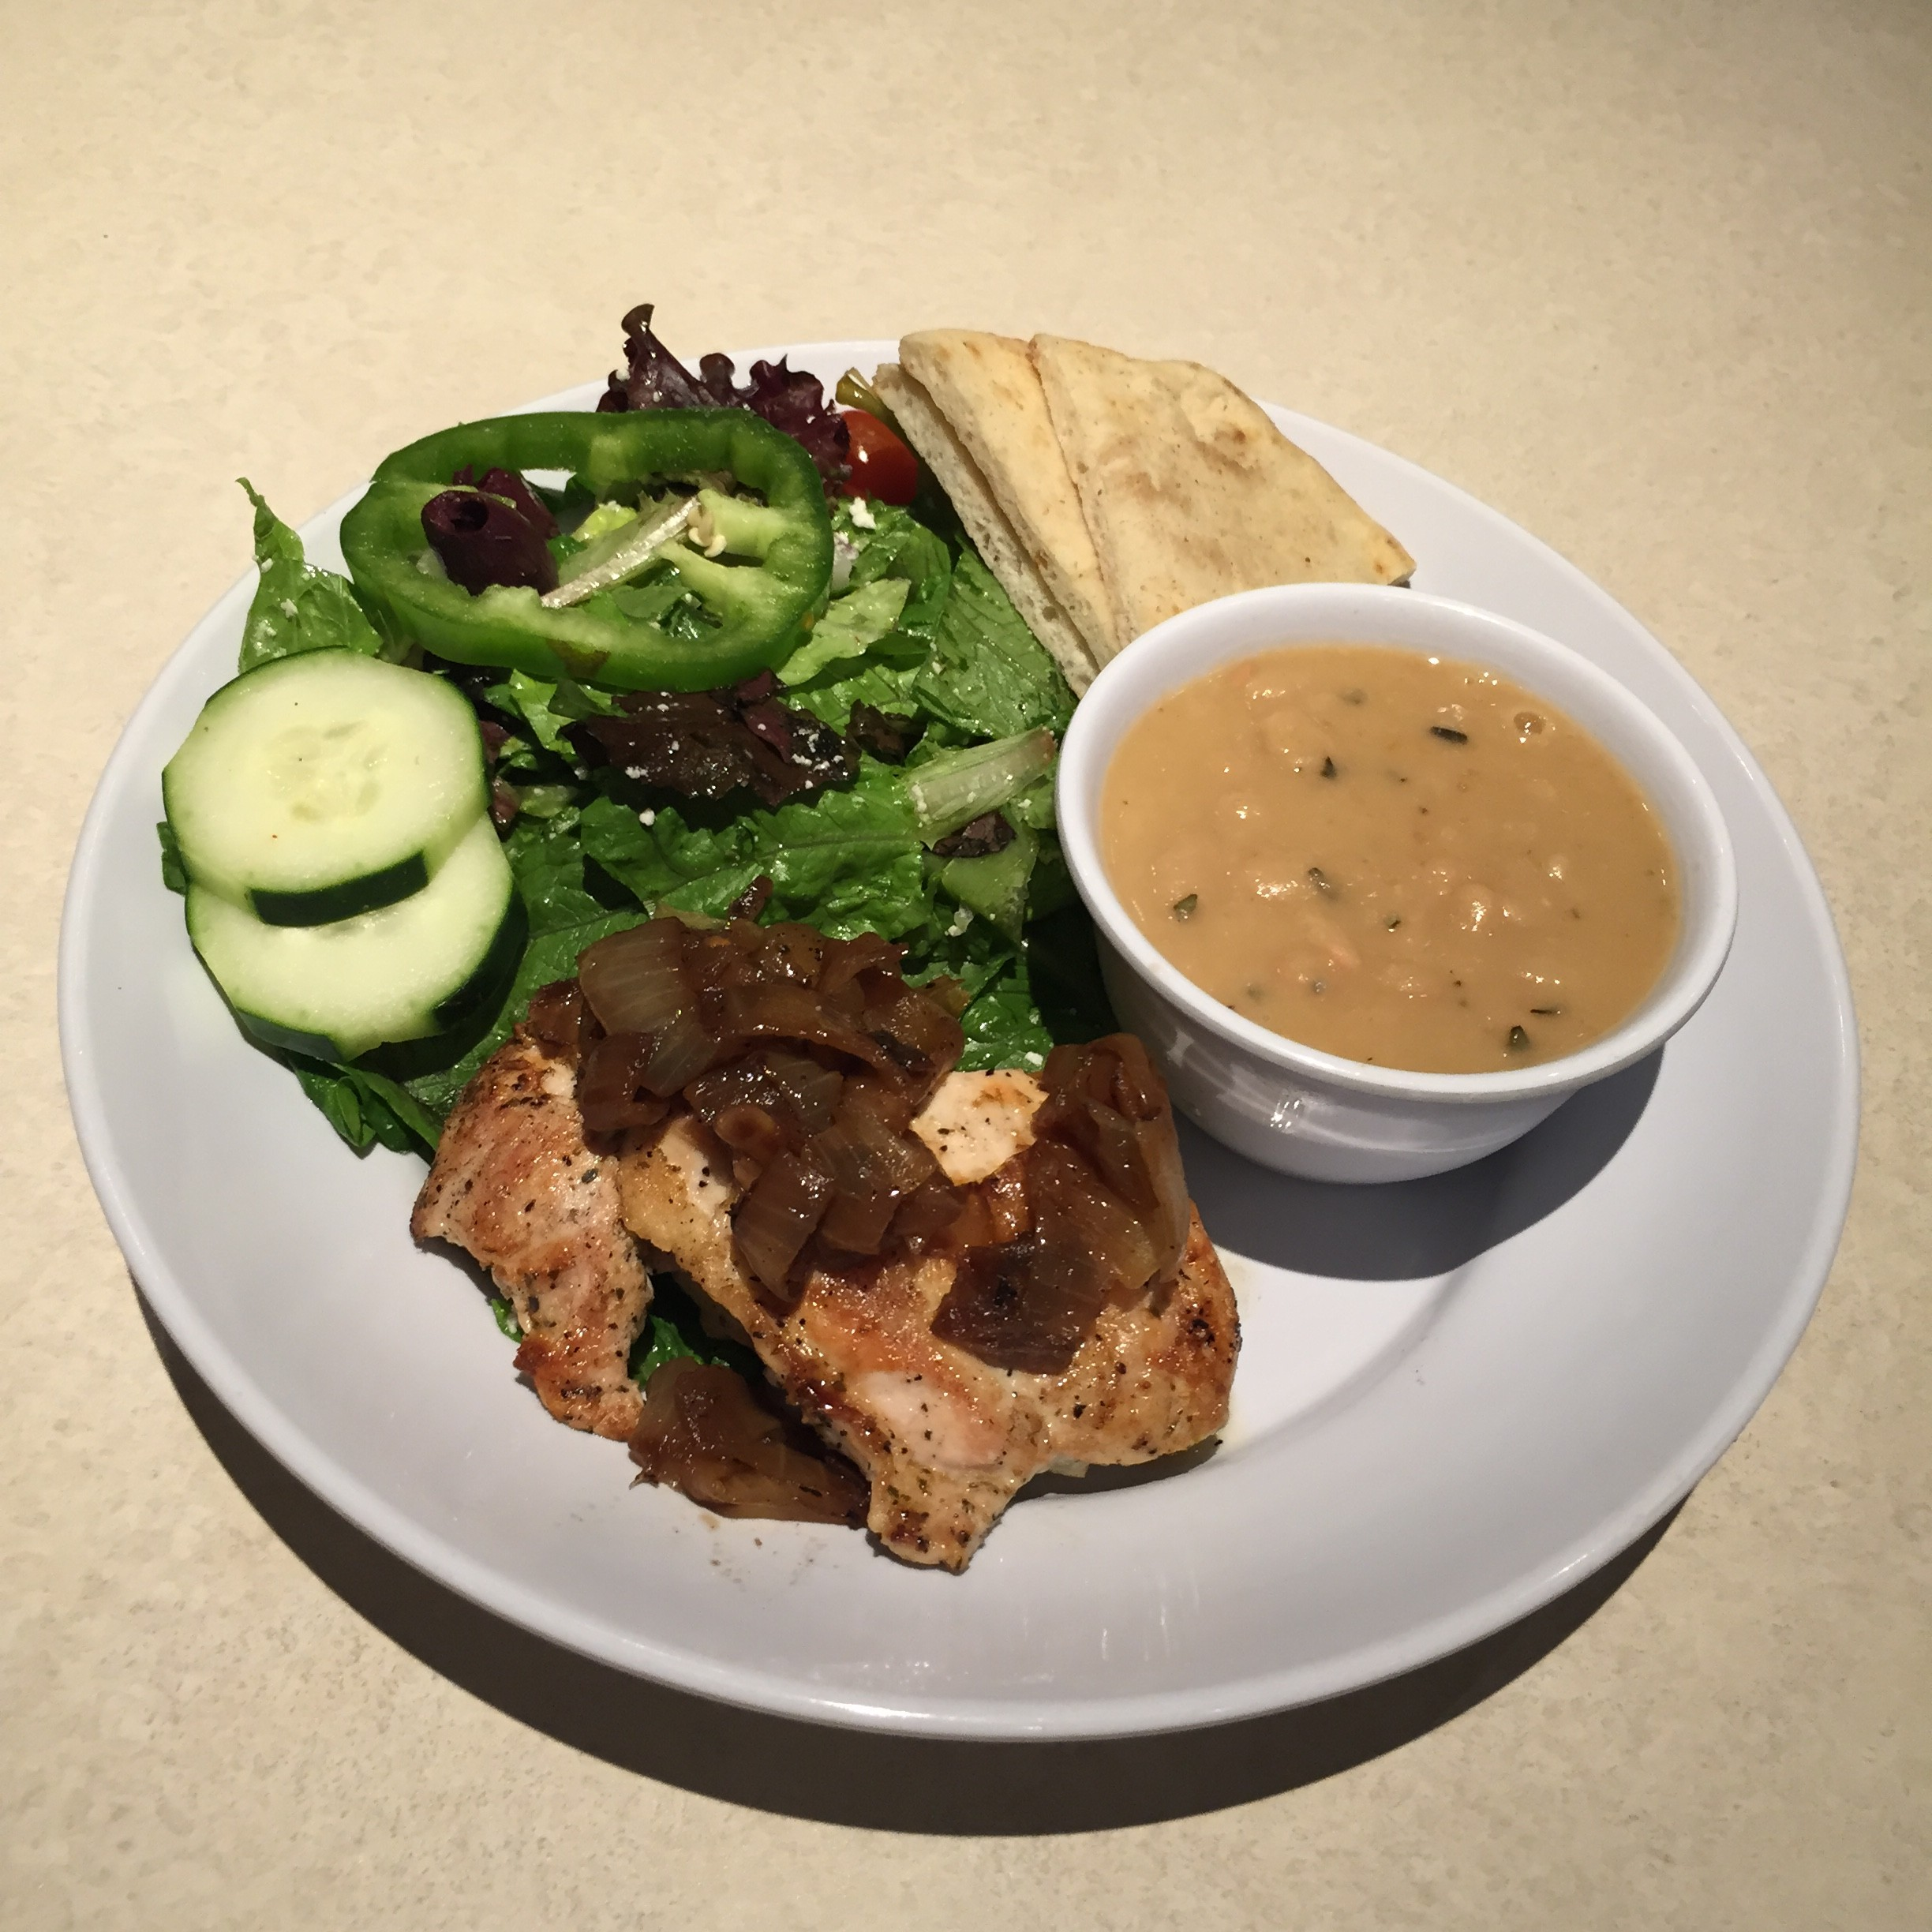 Zoes Kitchen Greek Chicken Pita zoes kitchen adds new entree and more hummus options to its menu